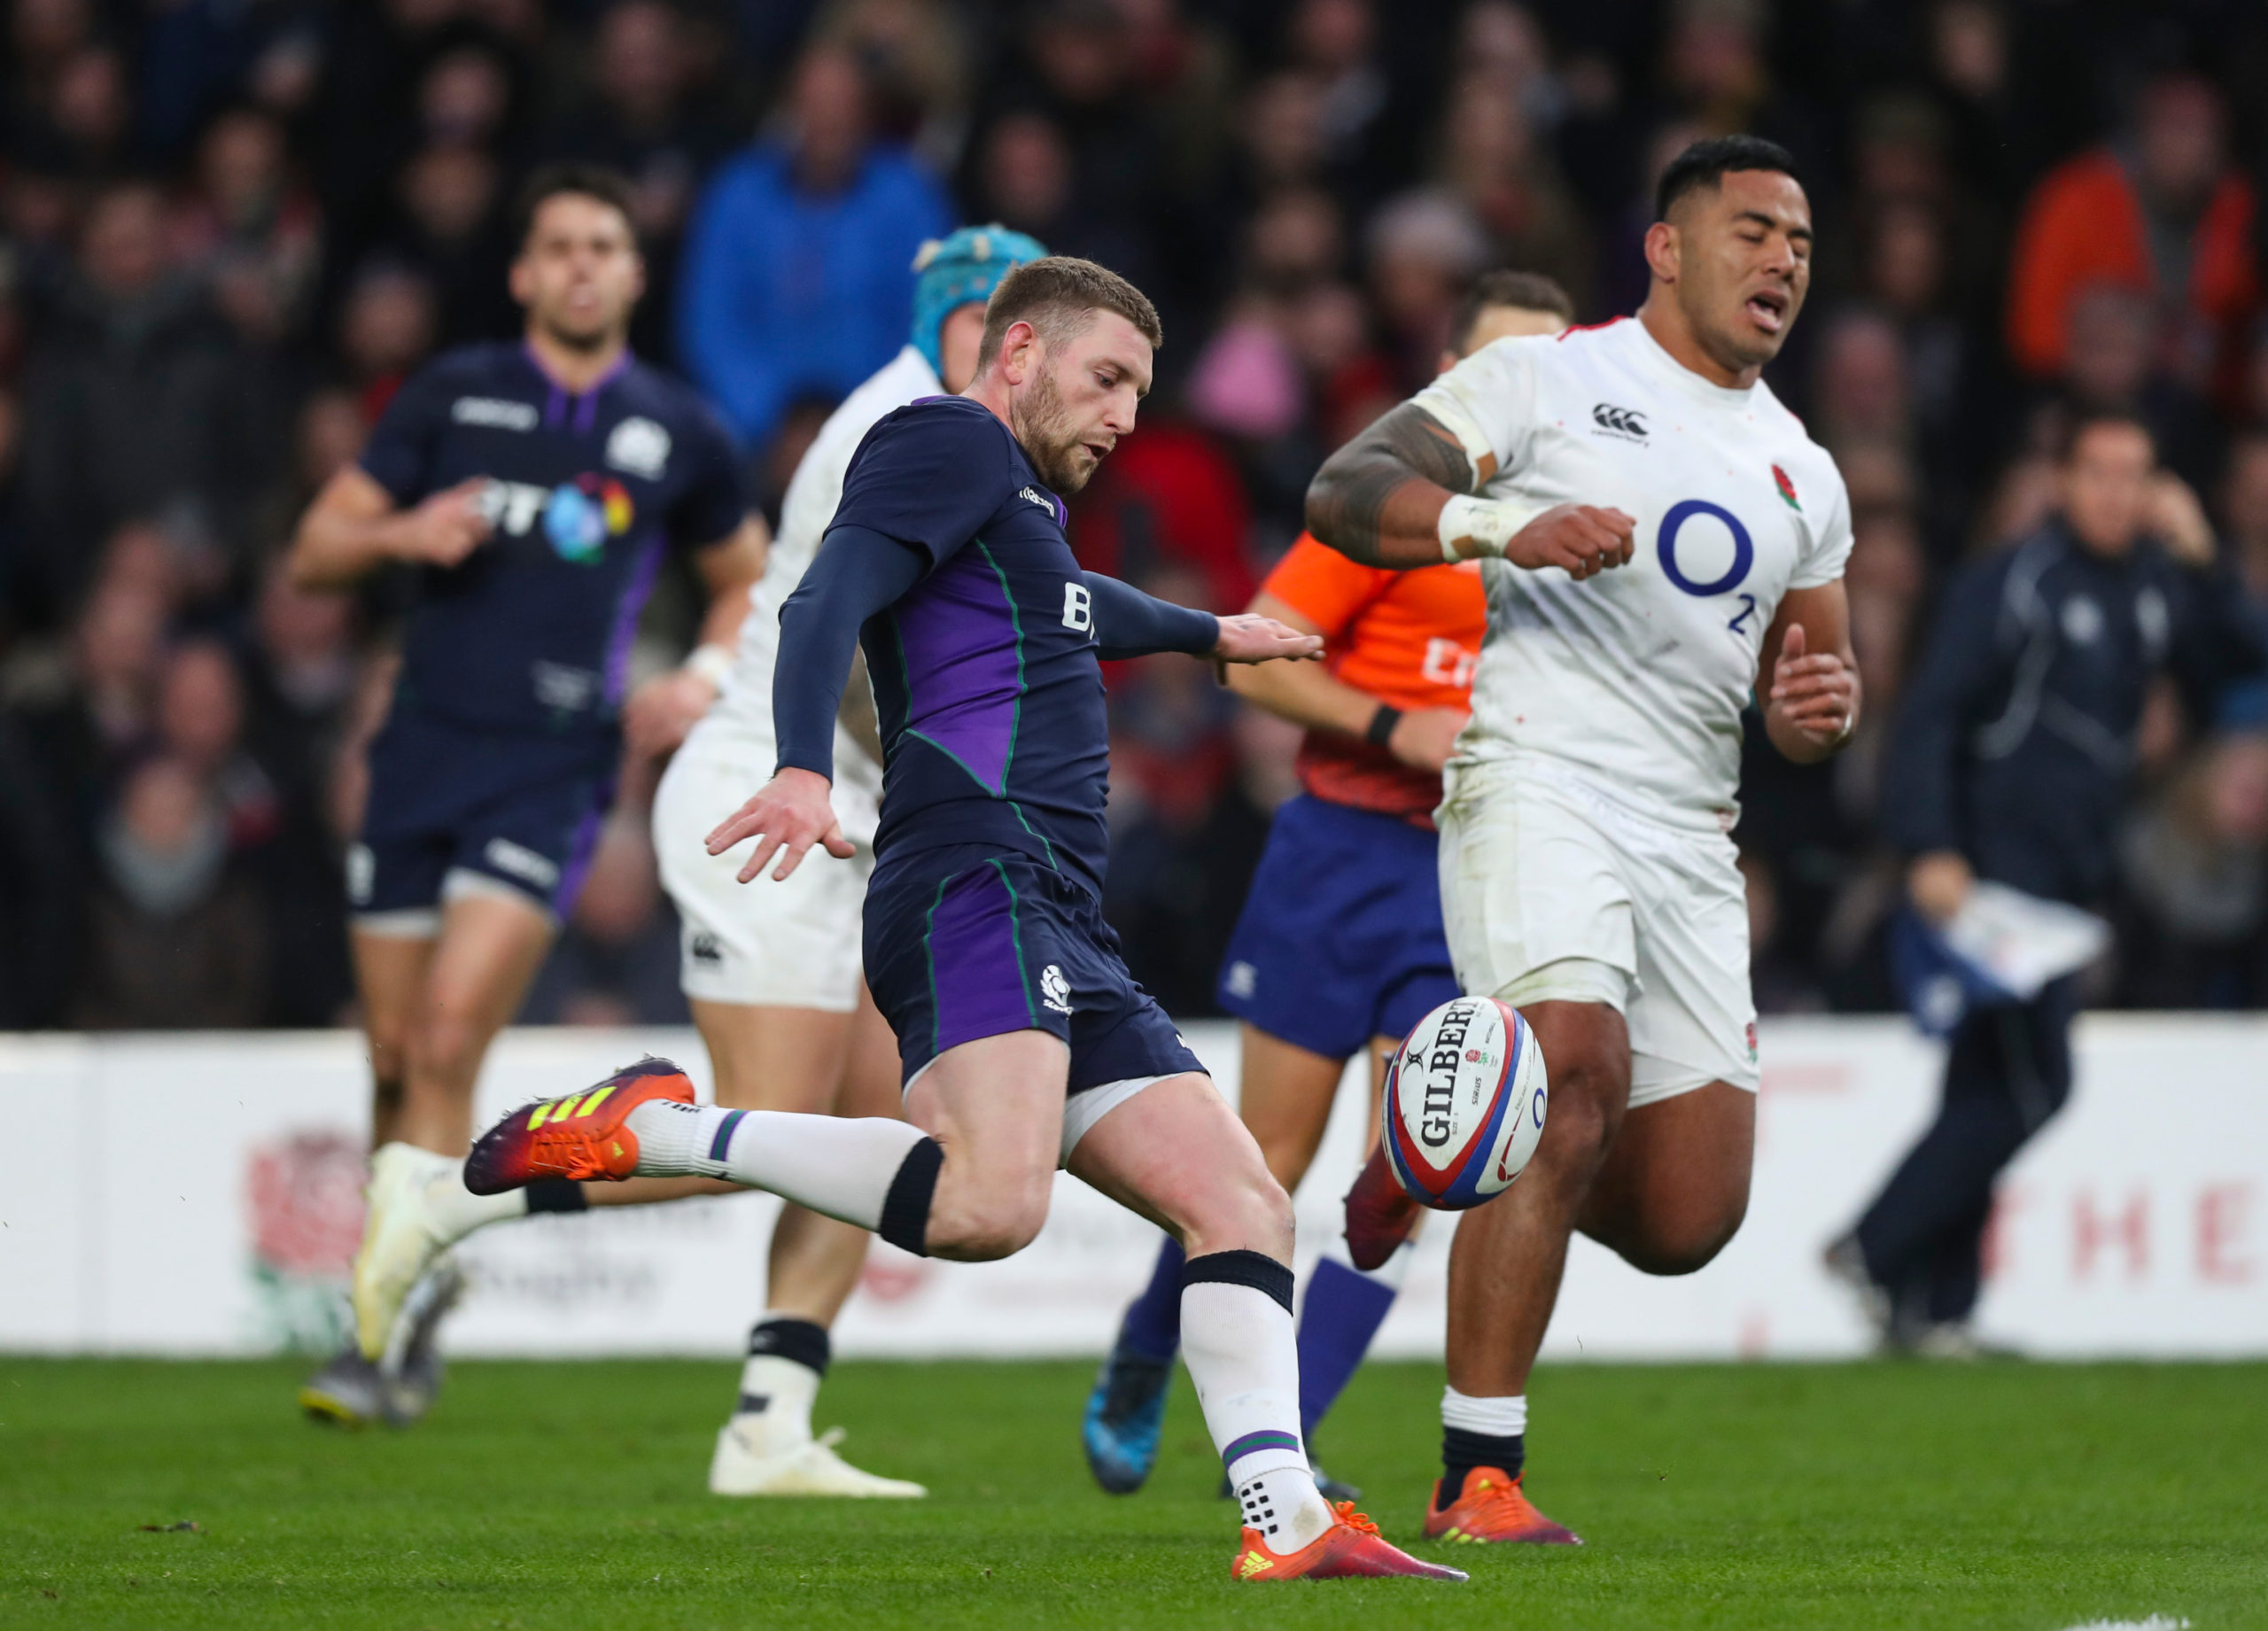 Finn Russell kicks during the second half of the Calcutta Cup game in 2019, something he did a lot more than the myth suggests.